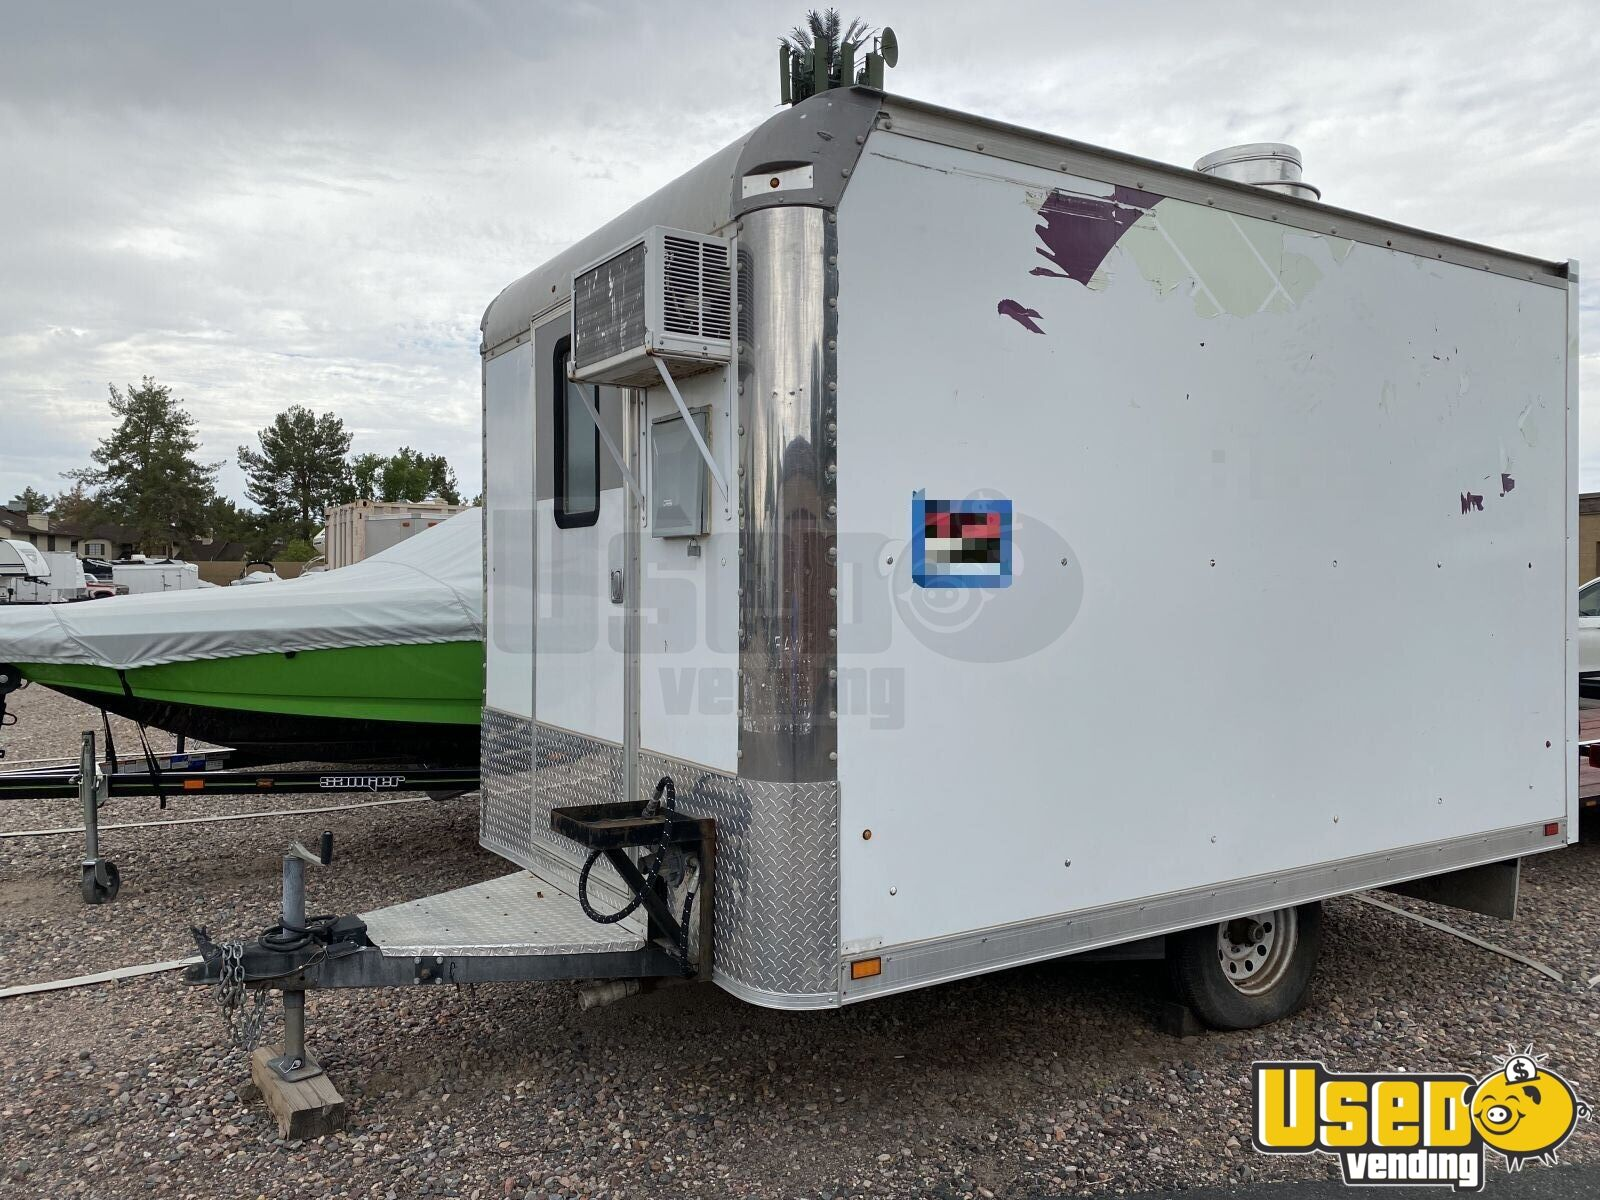 2012 Fbth All-purpose Food Trailer Air Conditioning Arizona for Sale - 2